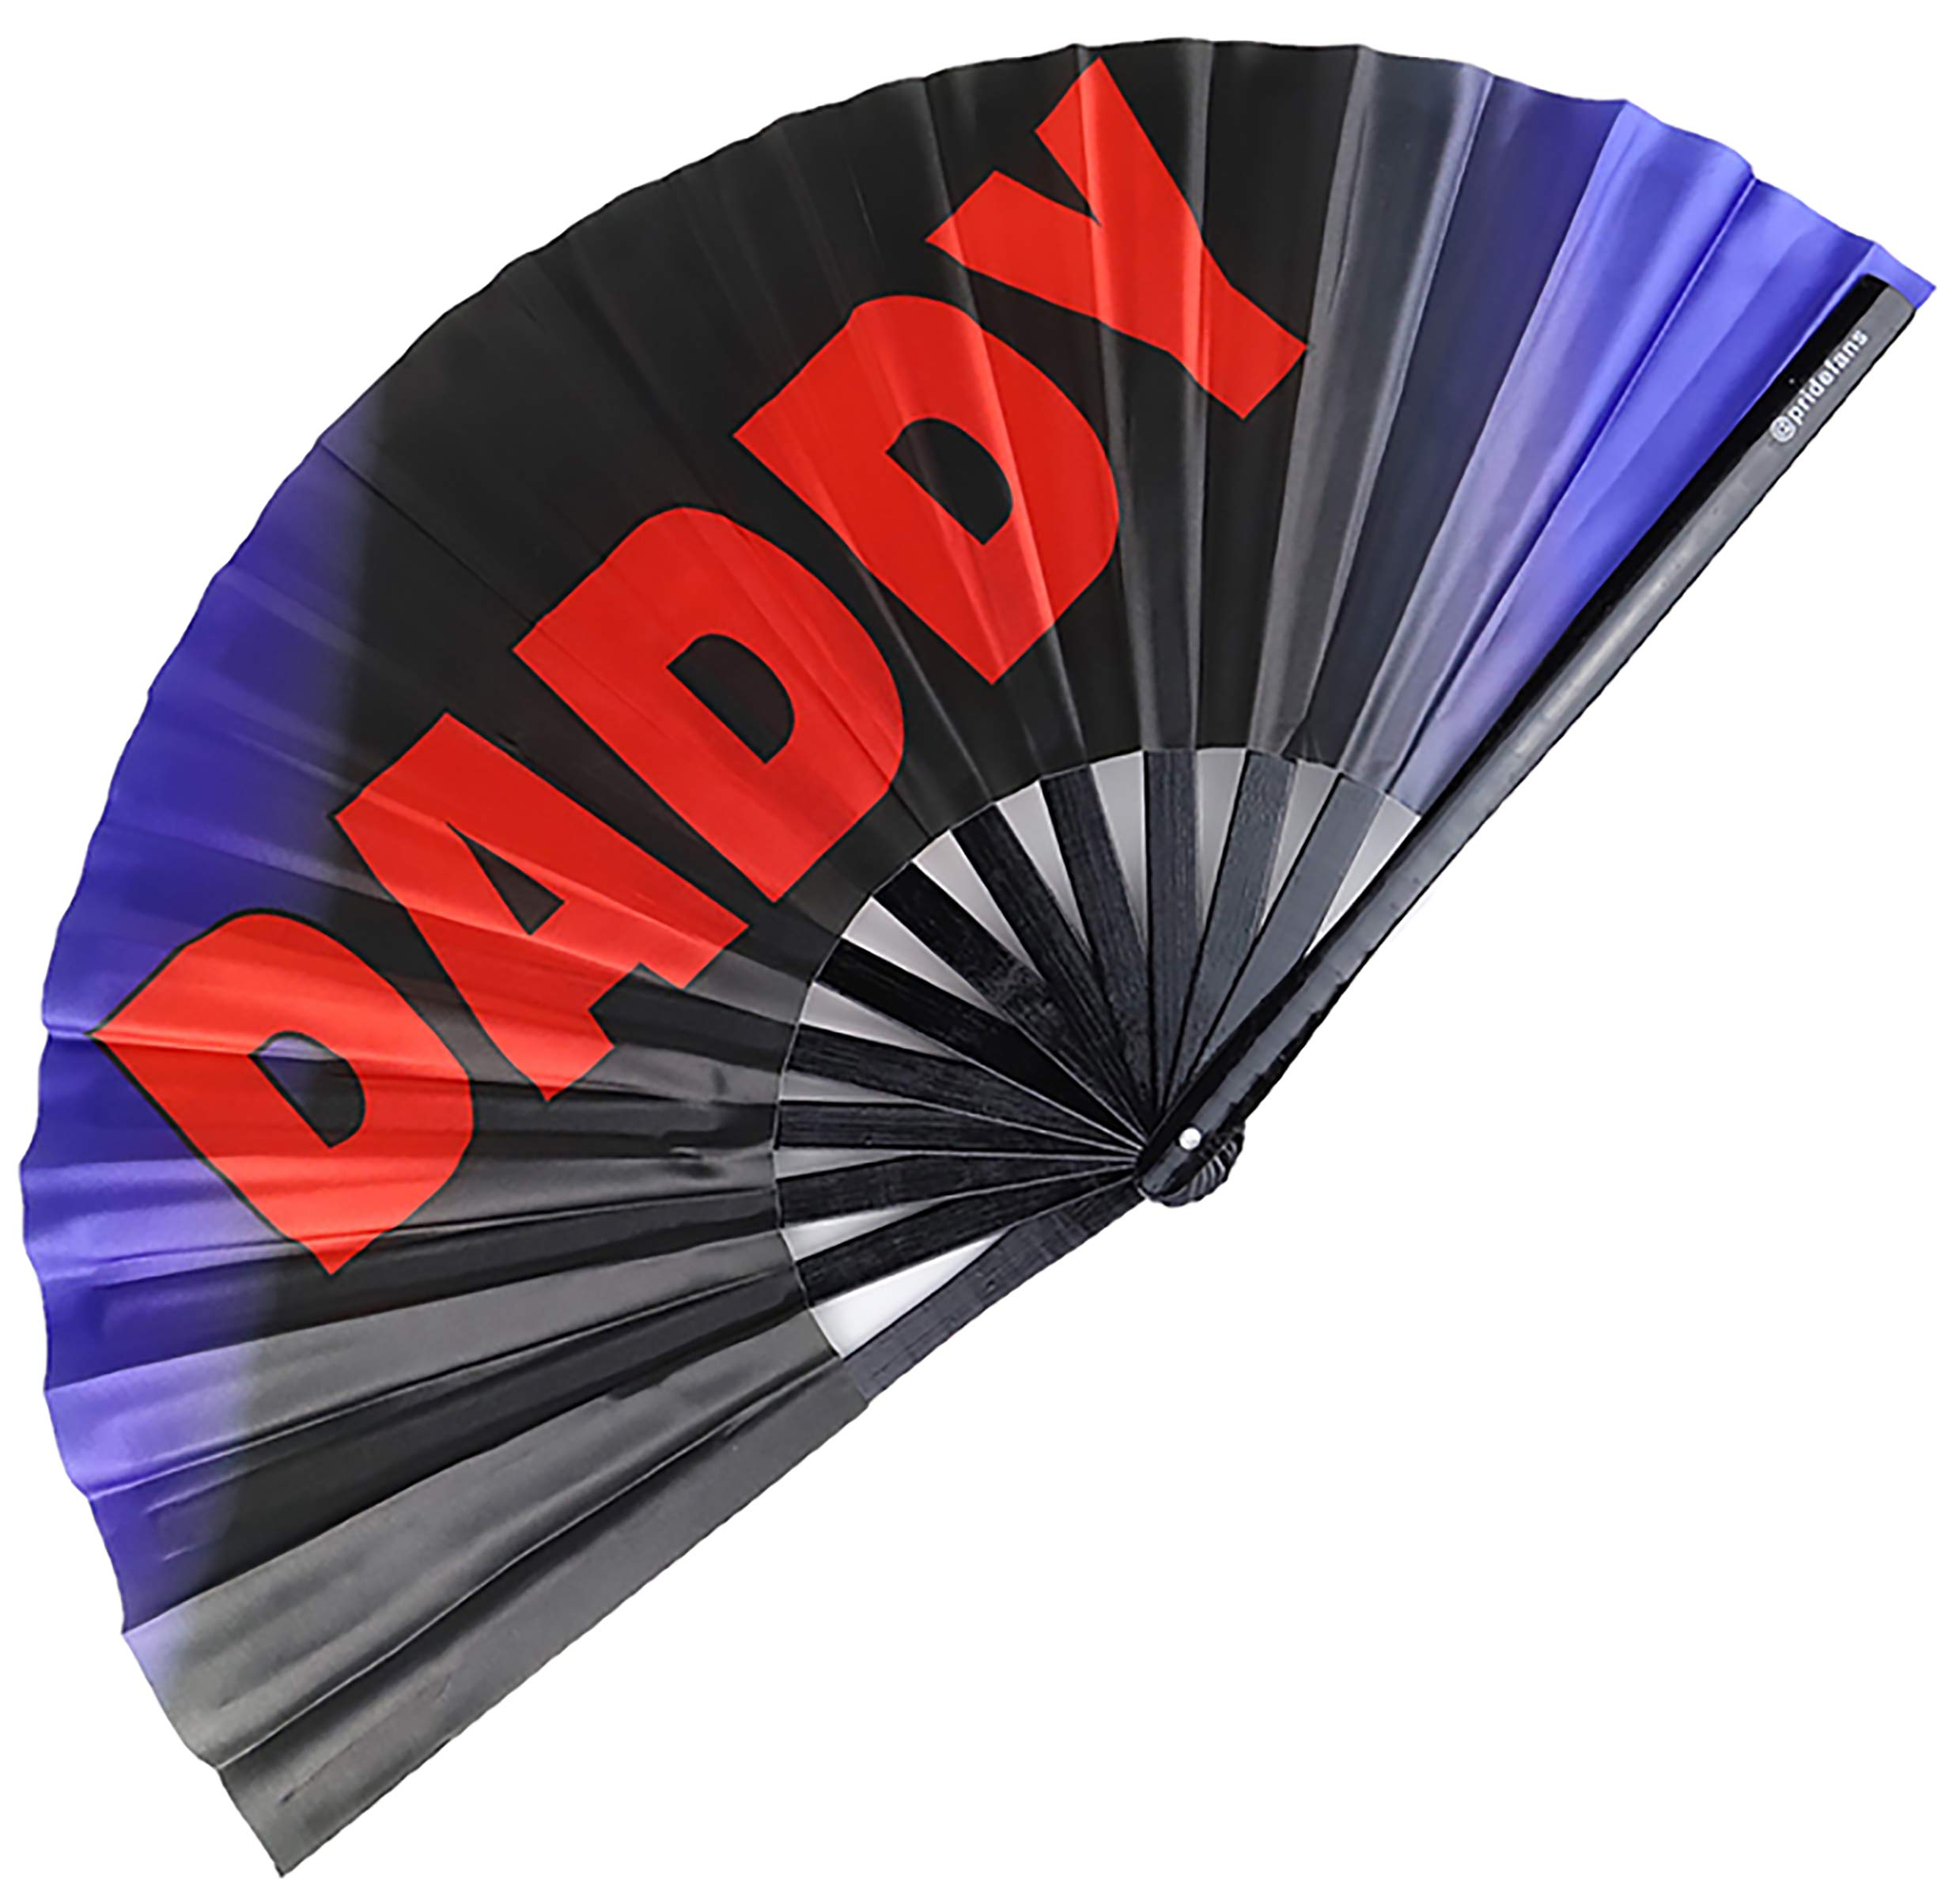 Pride Fans Daddy Large Bamboo Durable Fabric Rigid Rivet Loud Clacks Gay Rave Fan LGBTQ Festival Fan Hand Fan Drag Queen Fan Rainbow Fan Queer Gift Daddy Fans